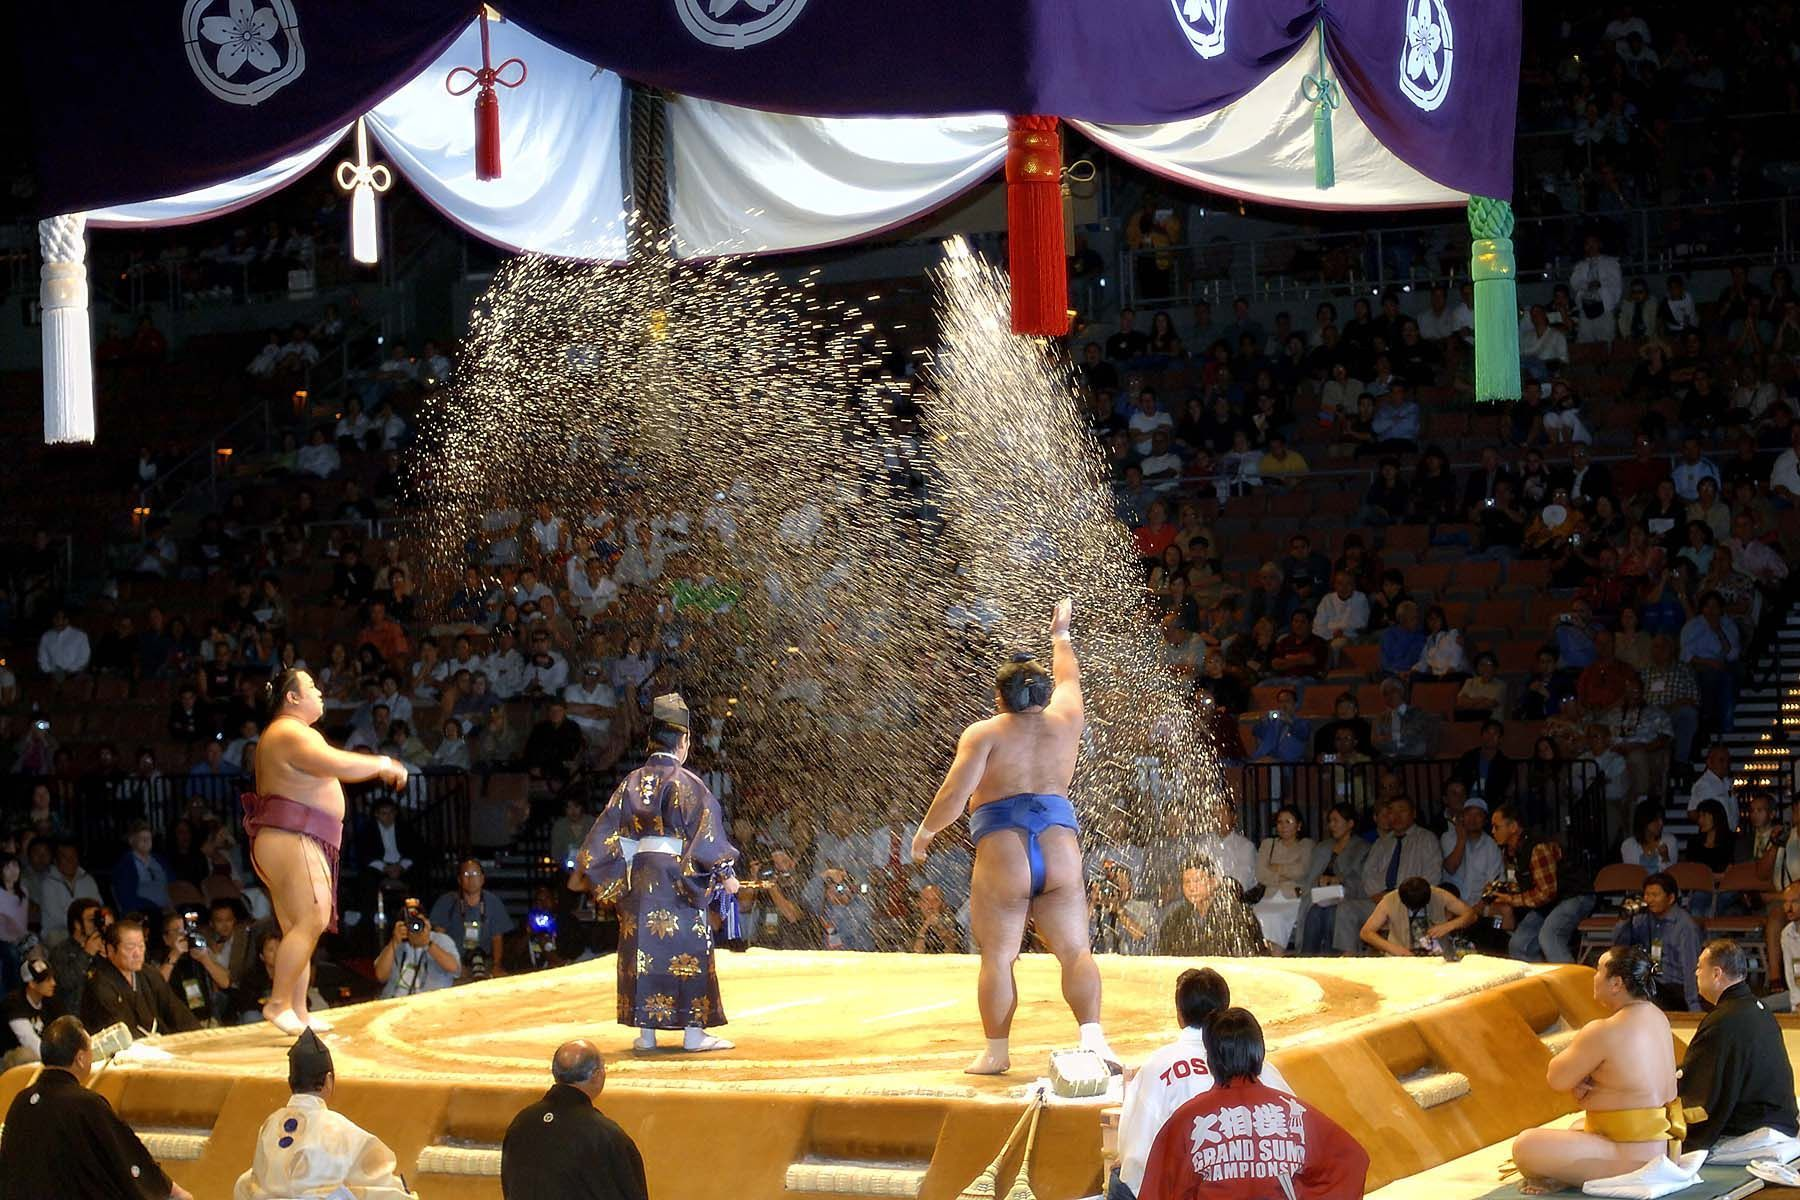 Sumo wrestlers throw salt before a match to purify the ring